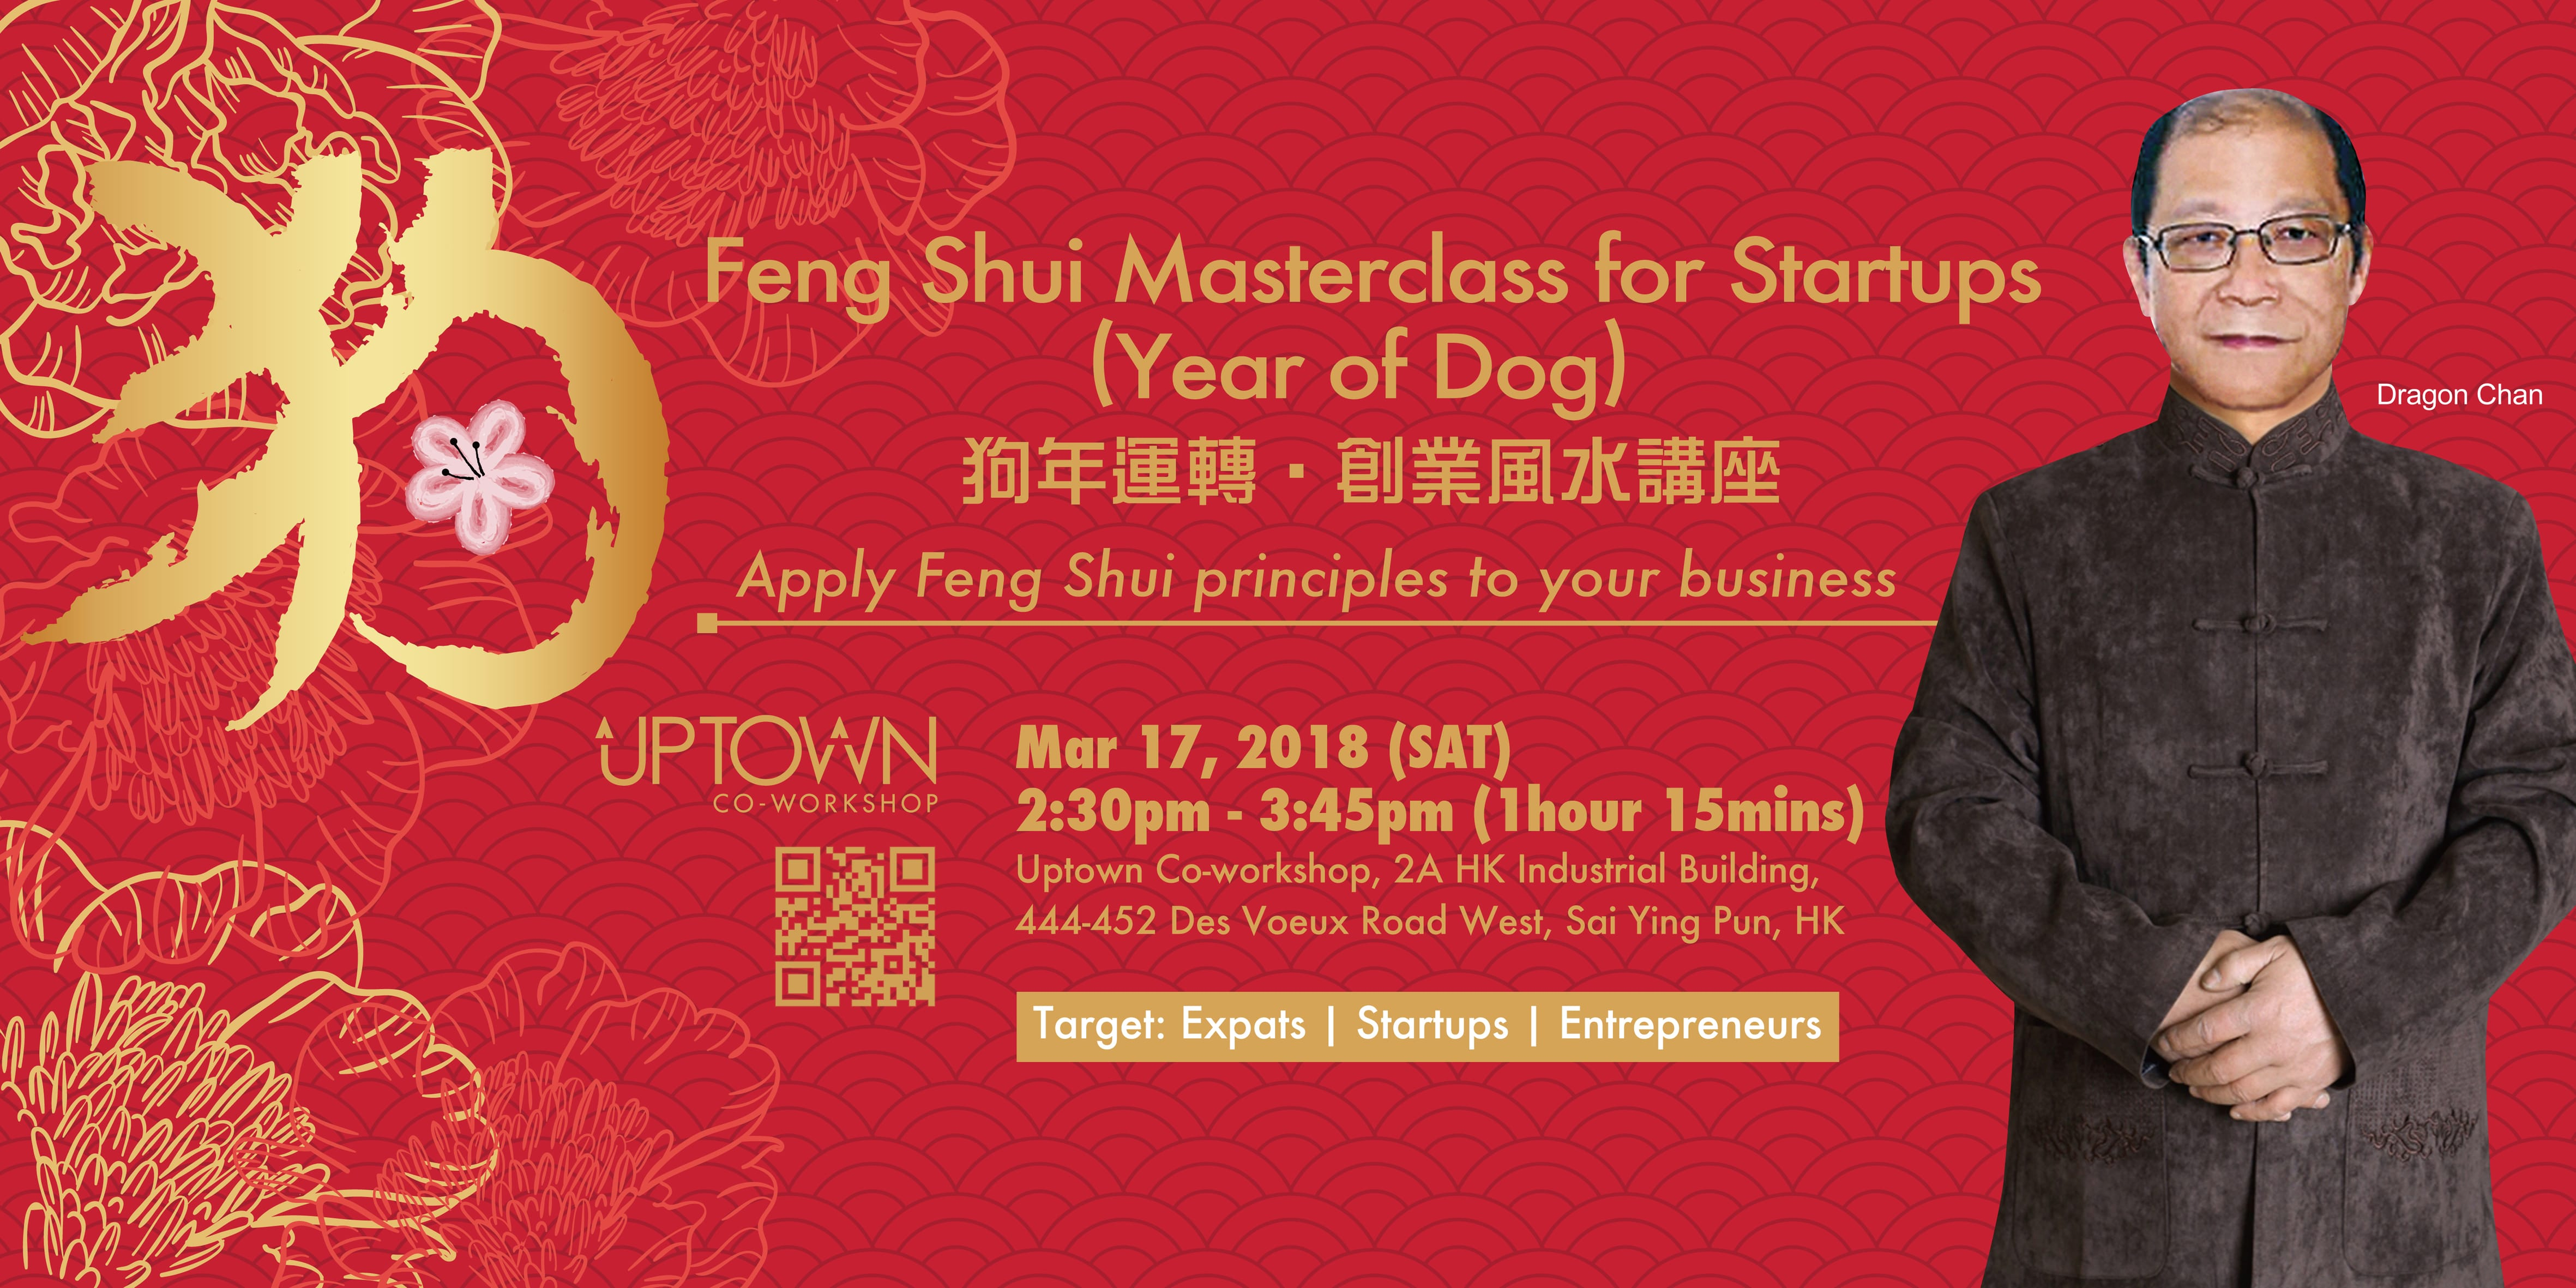 Feng Shui Masterclass for Startups(Year of Dog) 狗年運轉 創業風水講座